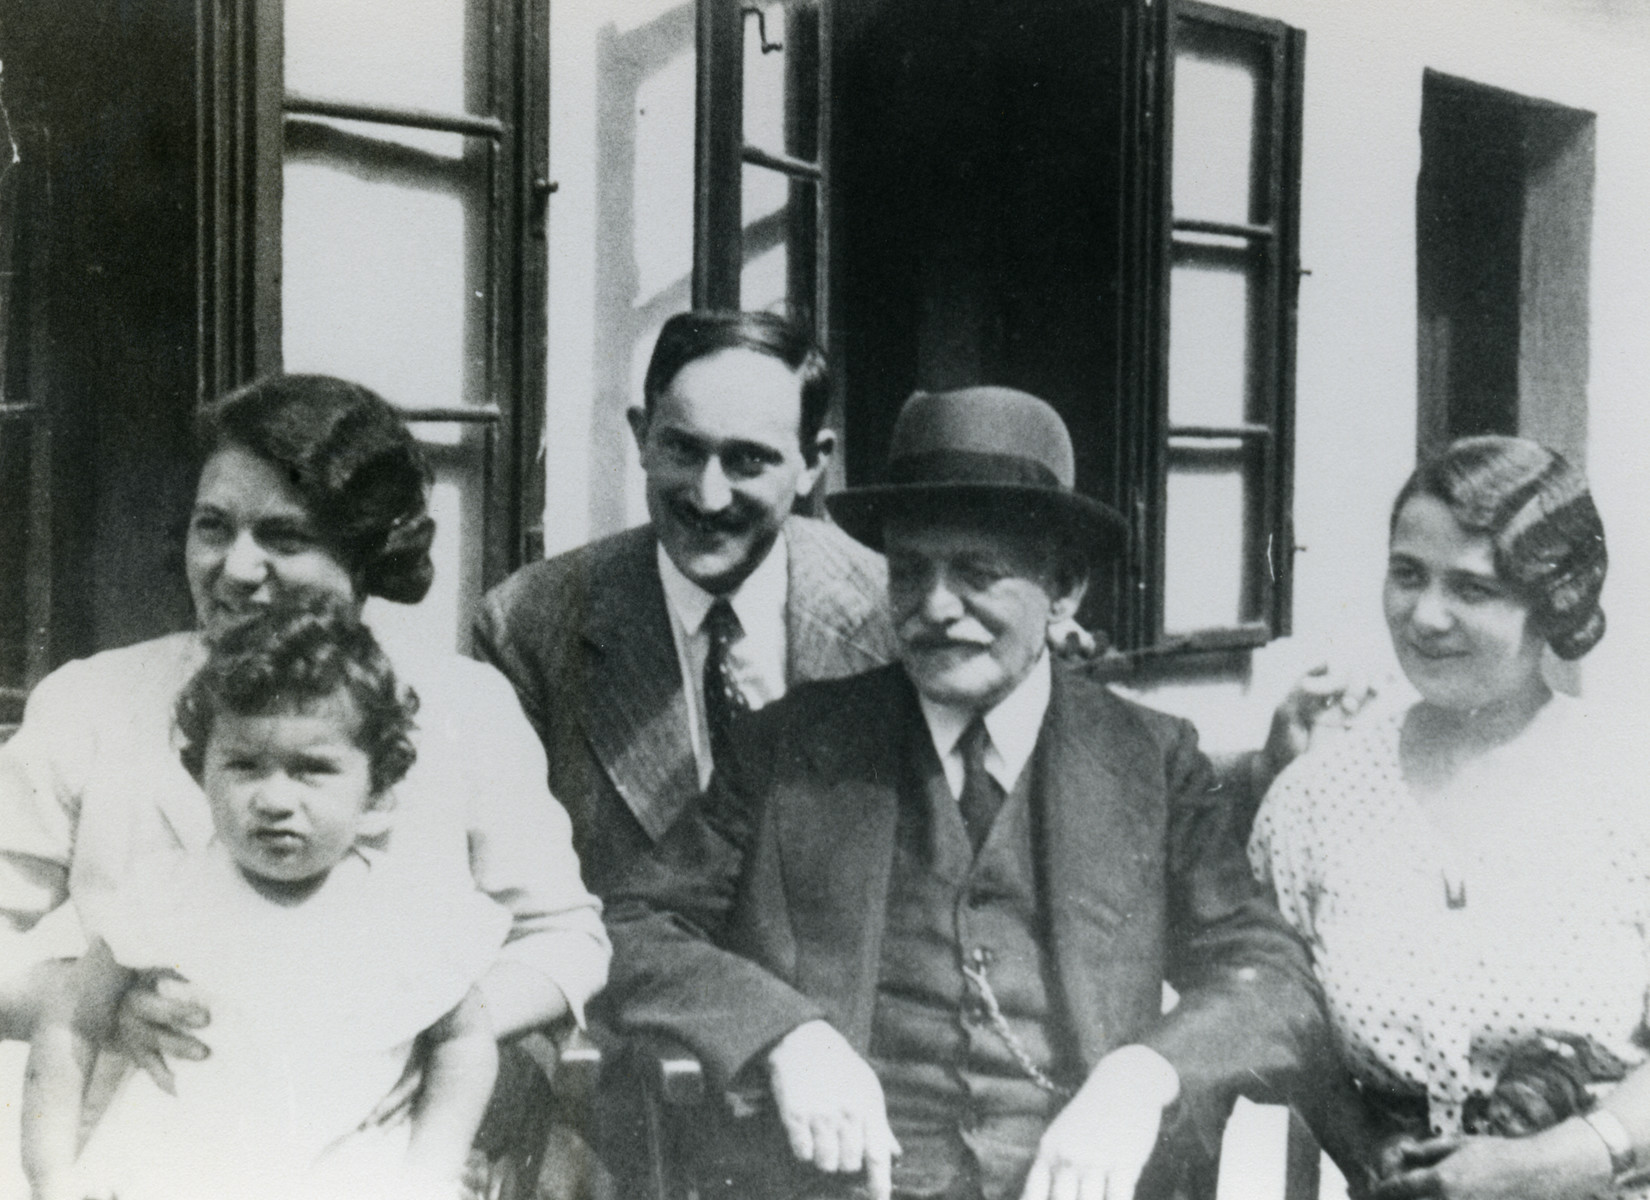 Group portrait of the Krausz and Jeiteles family.  From left to right: Dr. Lydie Krausz holding her daughter Helene Doris, Dr. Gajza Krausz, Dr. Isidor Jeiteles, one of Lydie's sisters.